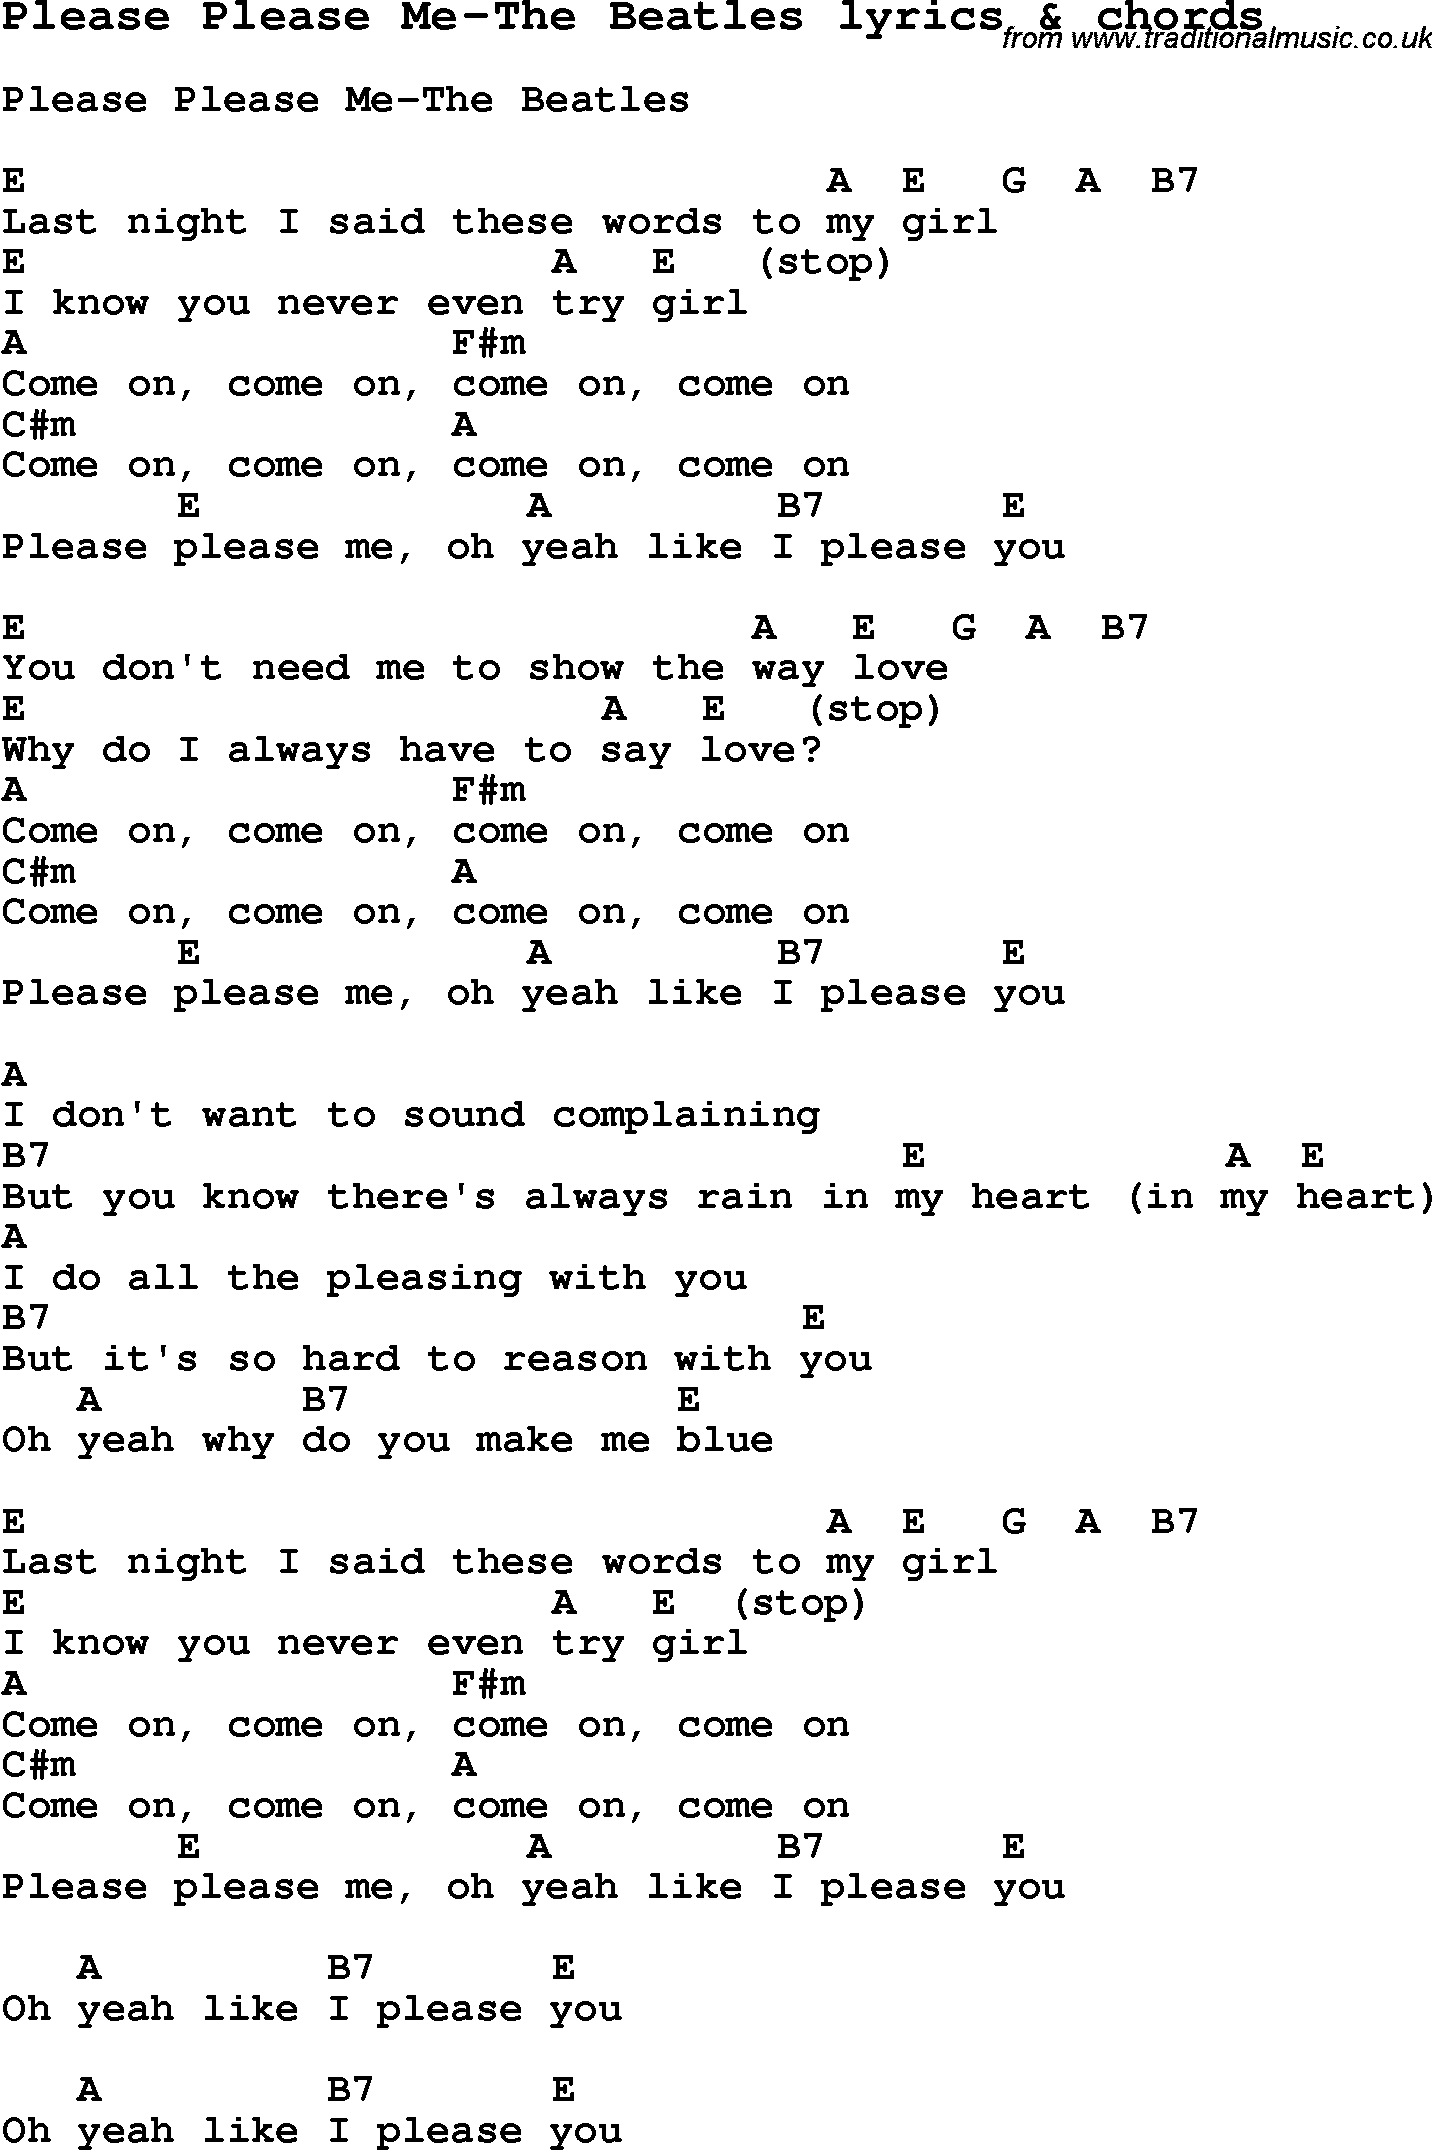 Love Song Lyrics for:Please Please Me-The Beatles with chords.